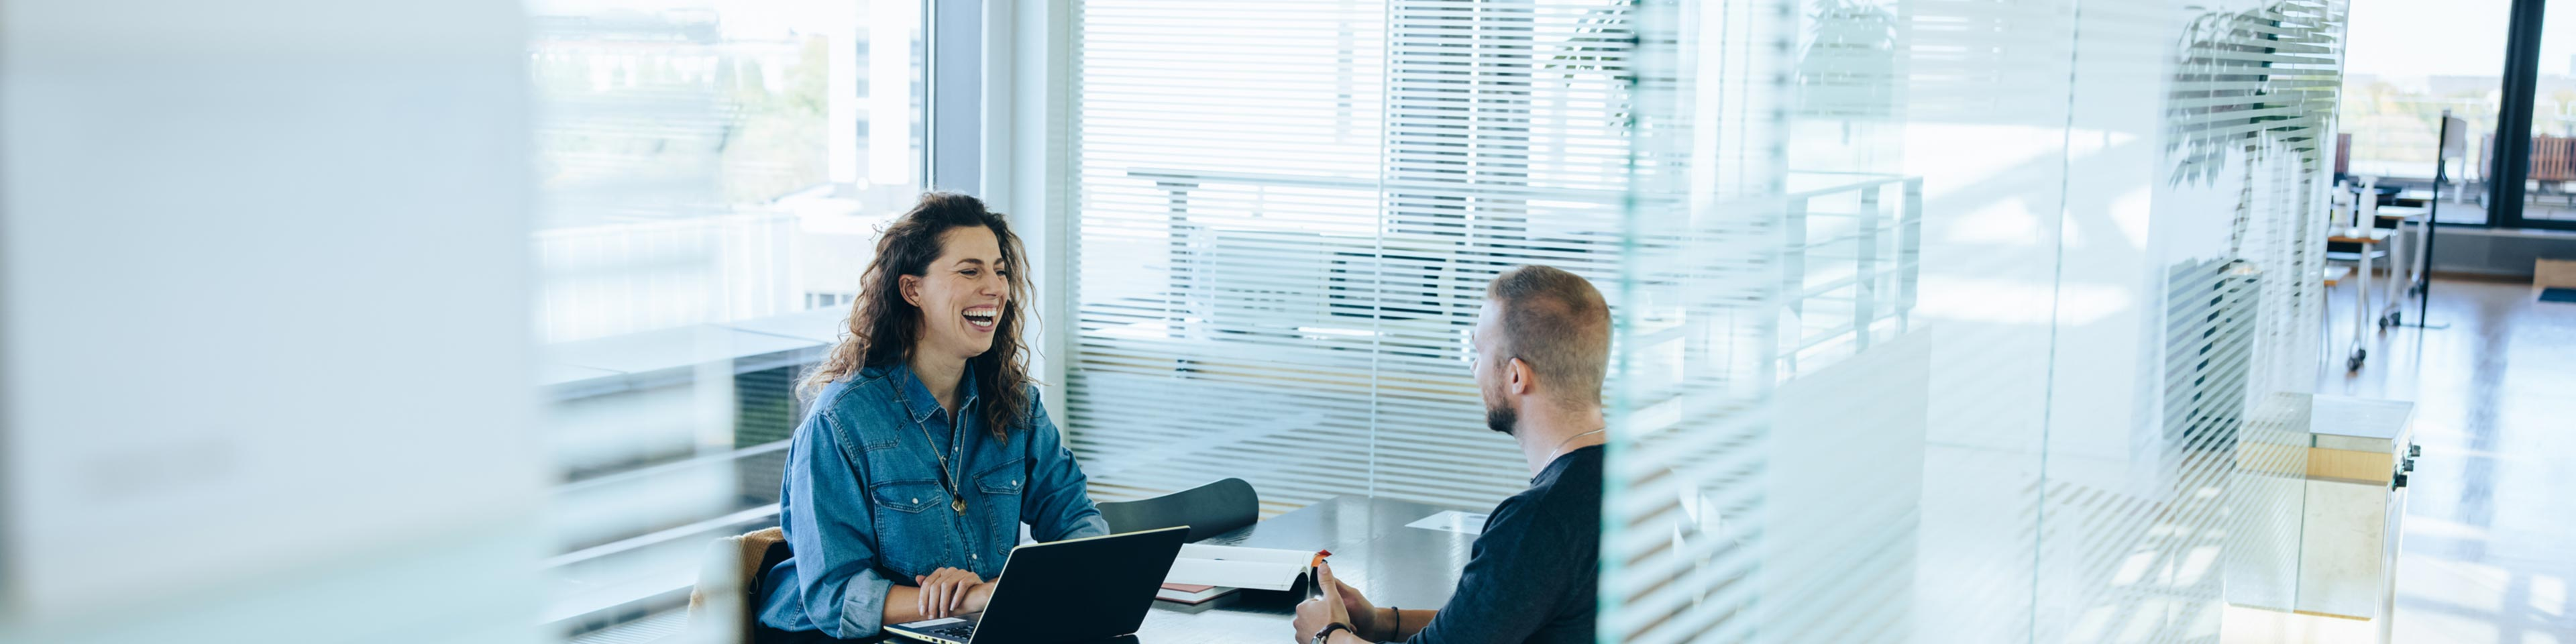 a businesswoman laughing while interviewing a potential candidate in an office setting